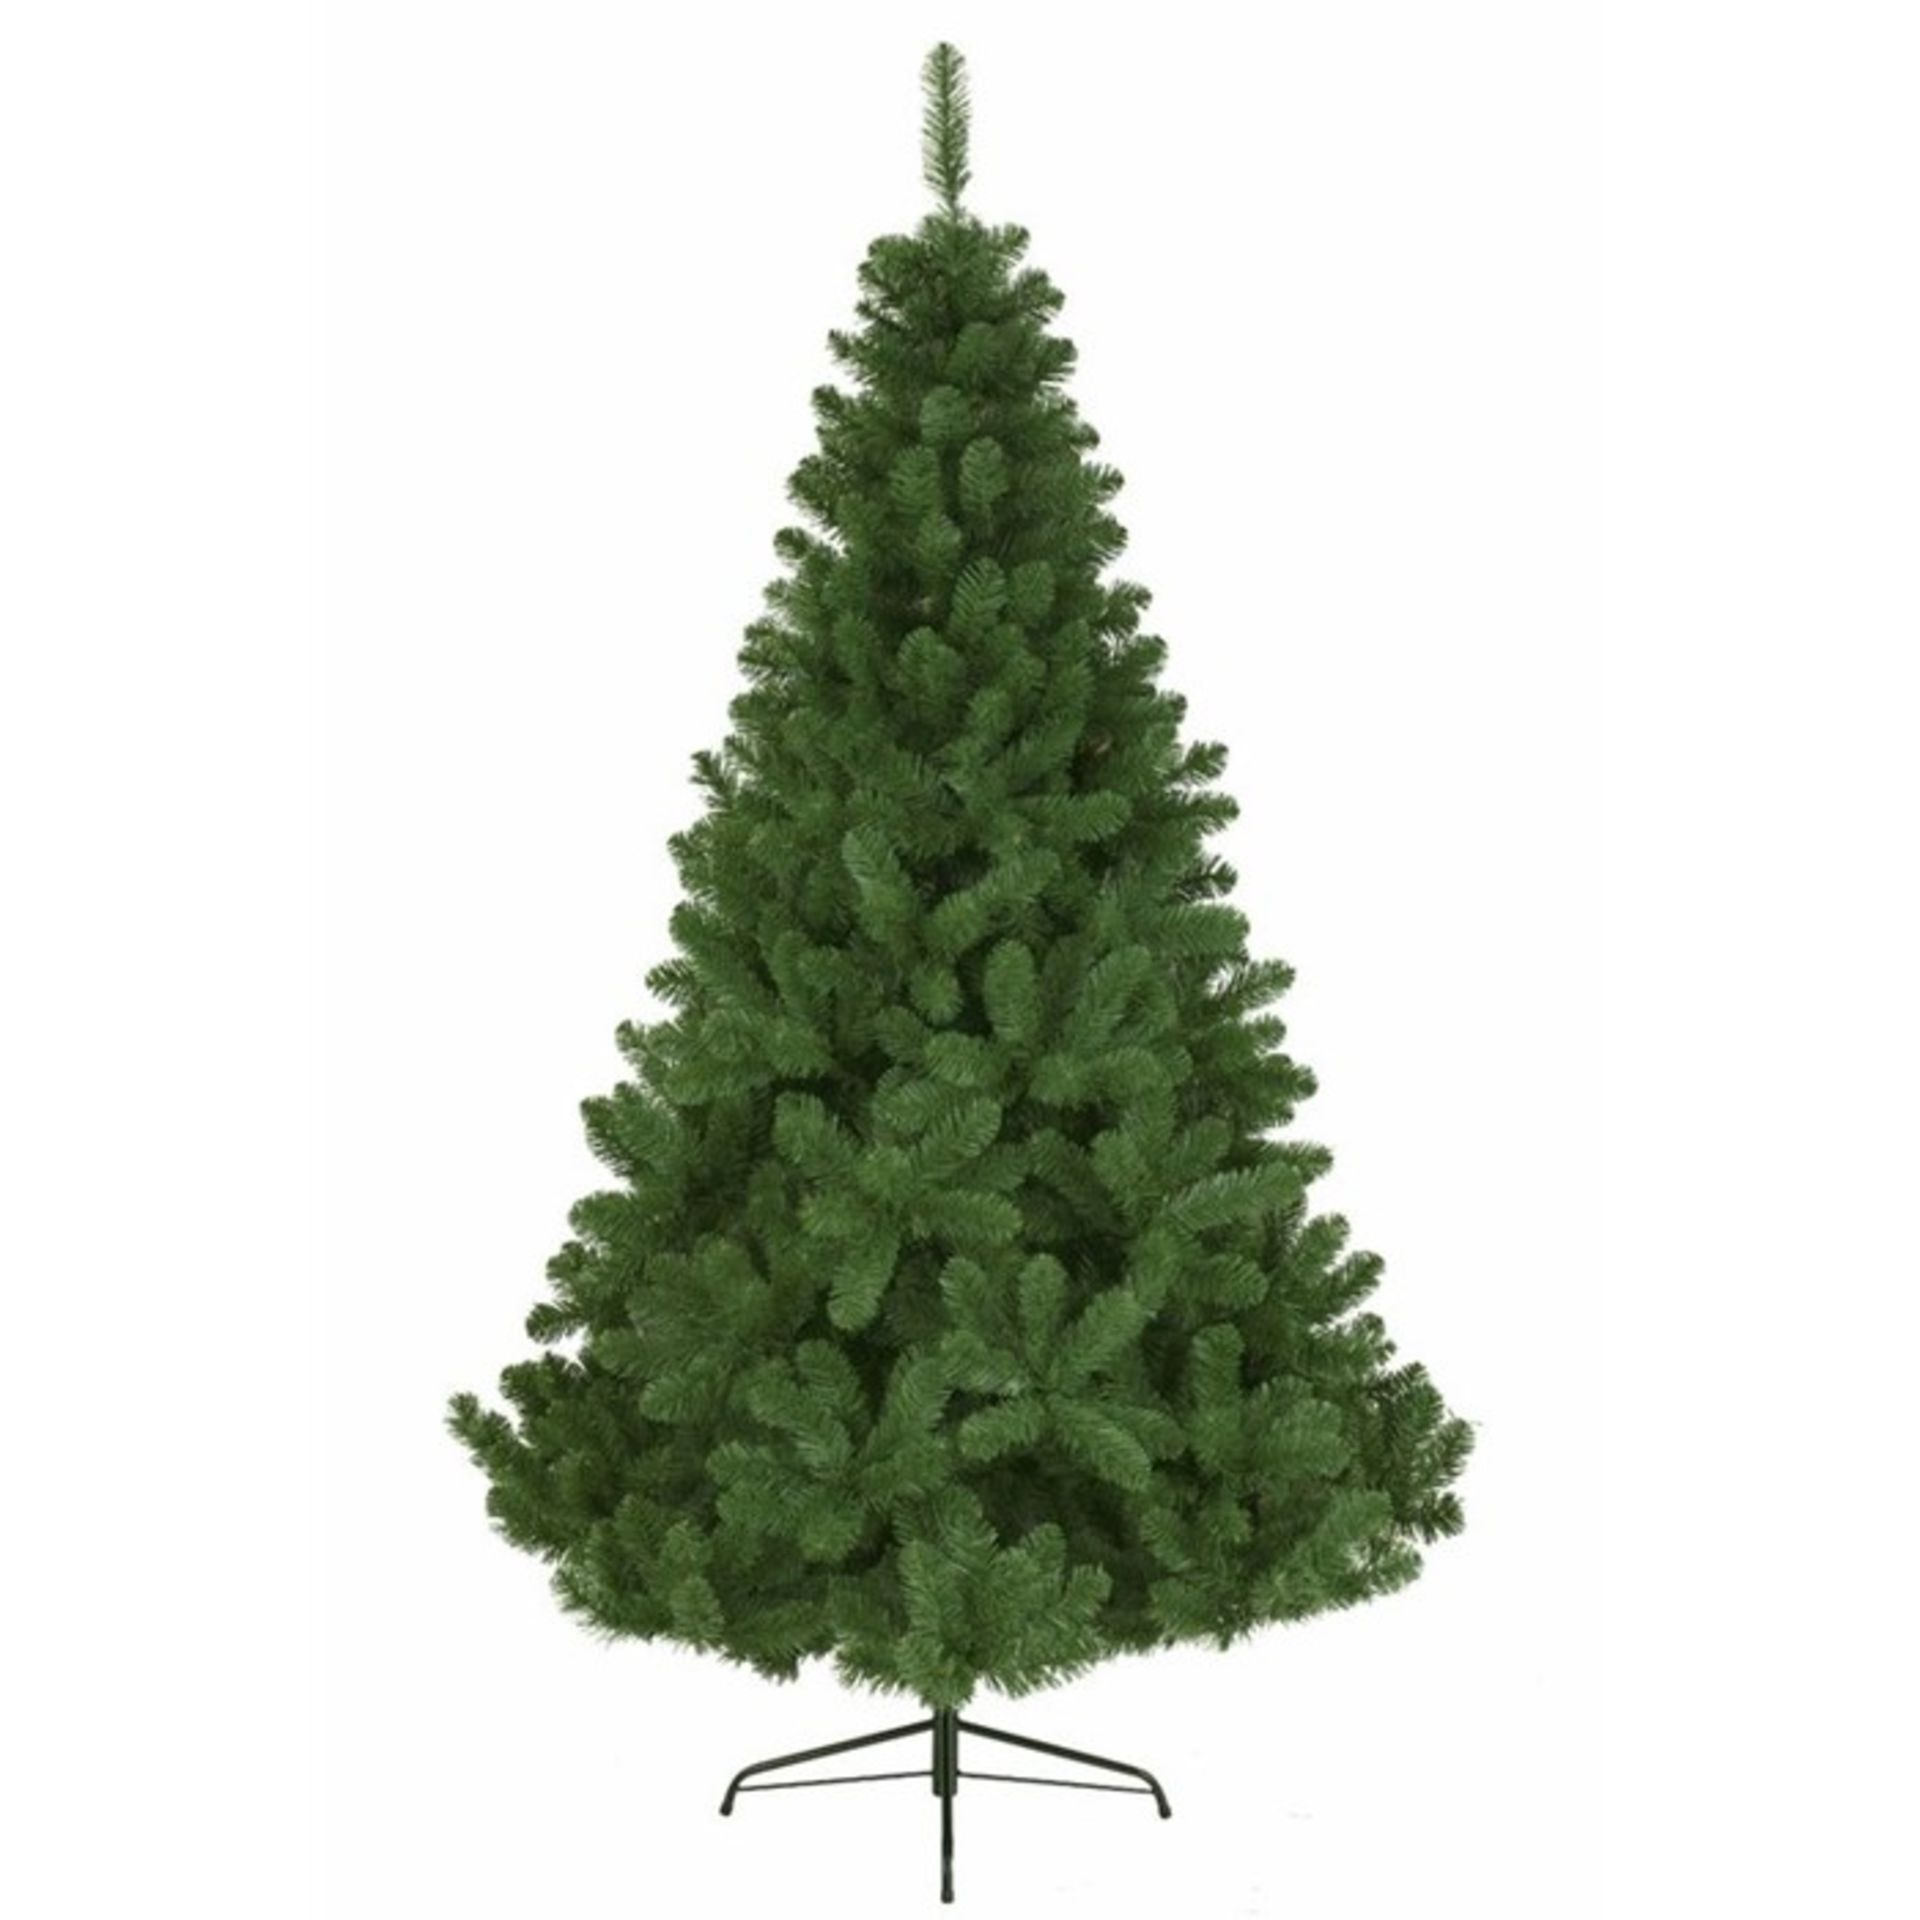 The Seasonal Aisle, 4ft Green Pine Artificial Christmas Tree with Stand - RRP £50.99 (PIDA1565.